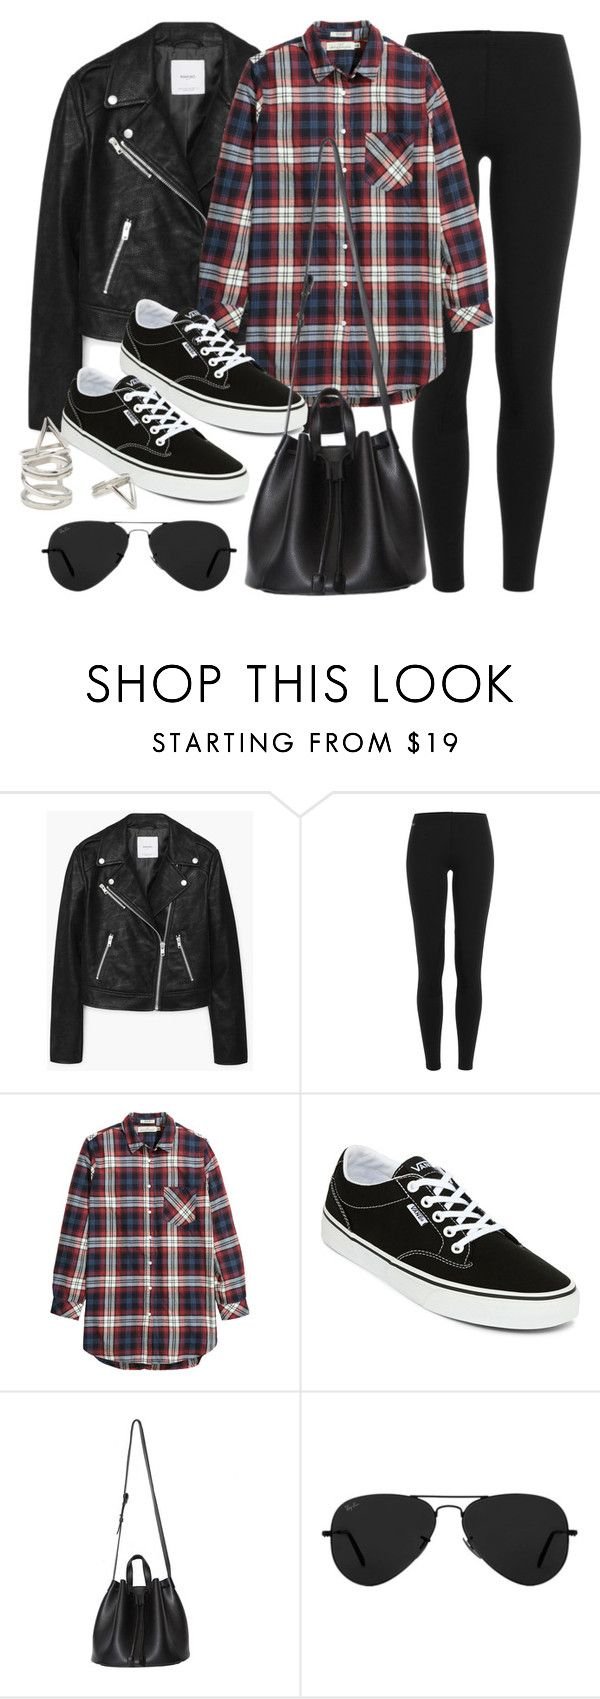 """""""Style #11630"""" by vany-alvarado ❤ liked on Polyvore featuring MANGO, Polo Ralph Lauren, H&M, Vans, Ray-Ban and Forever 21"""